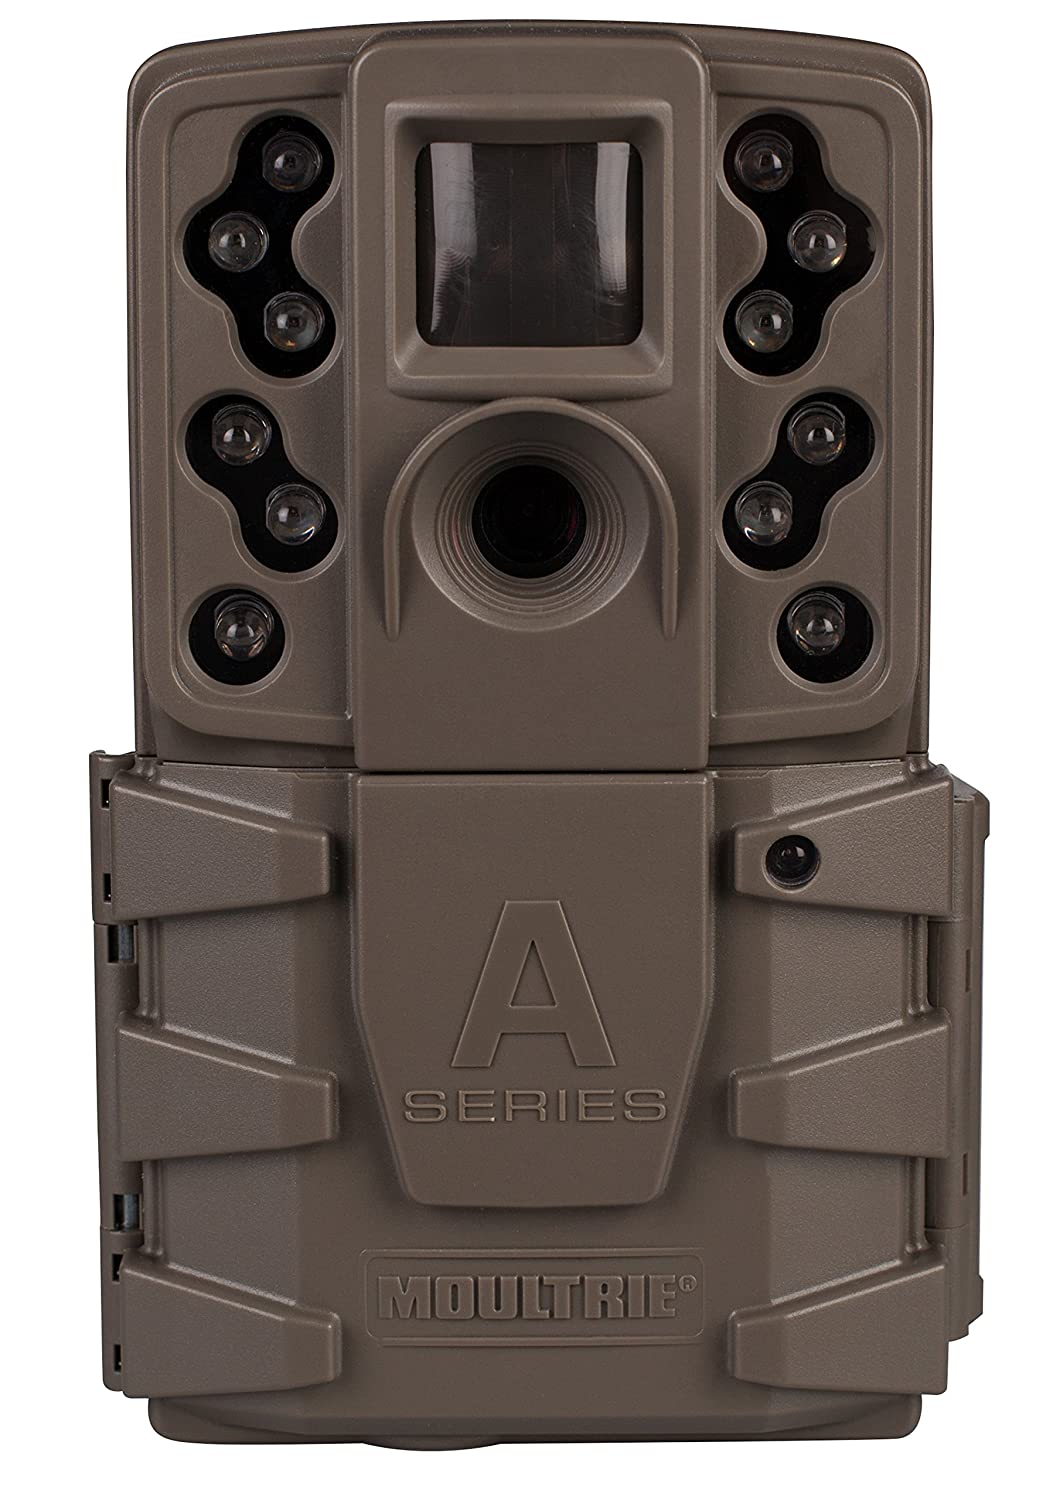 Moultrie A 25 Game Camera 2018 | A Series| 12 MP | 0.9 S Trigger Speed | 720p Video | Compatible with Moultrie Mobile sold separately